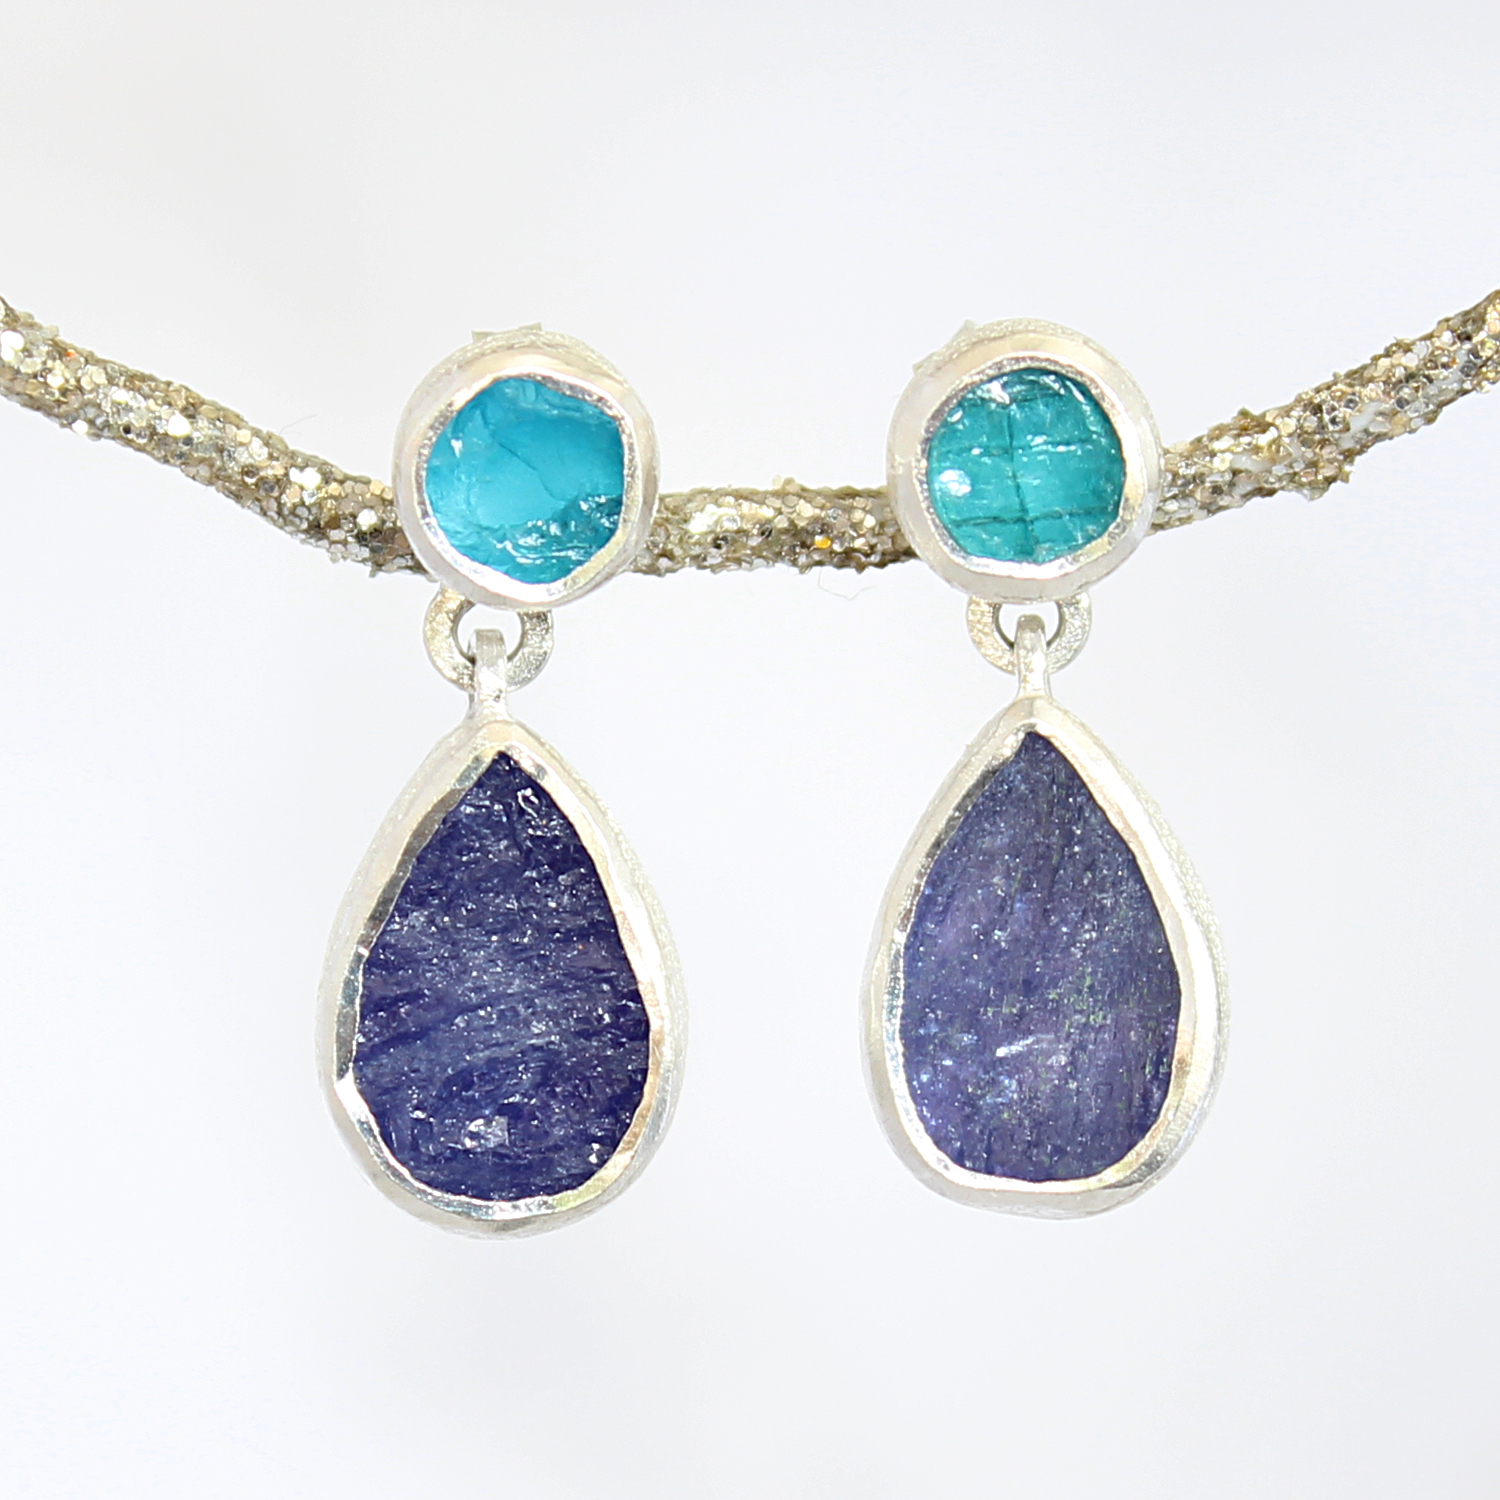 Tanzanite And Apatite Gemstone Handmade Silver Earrings